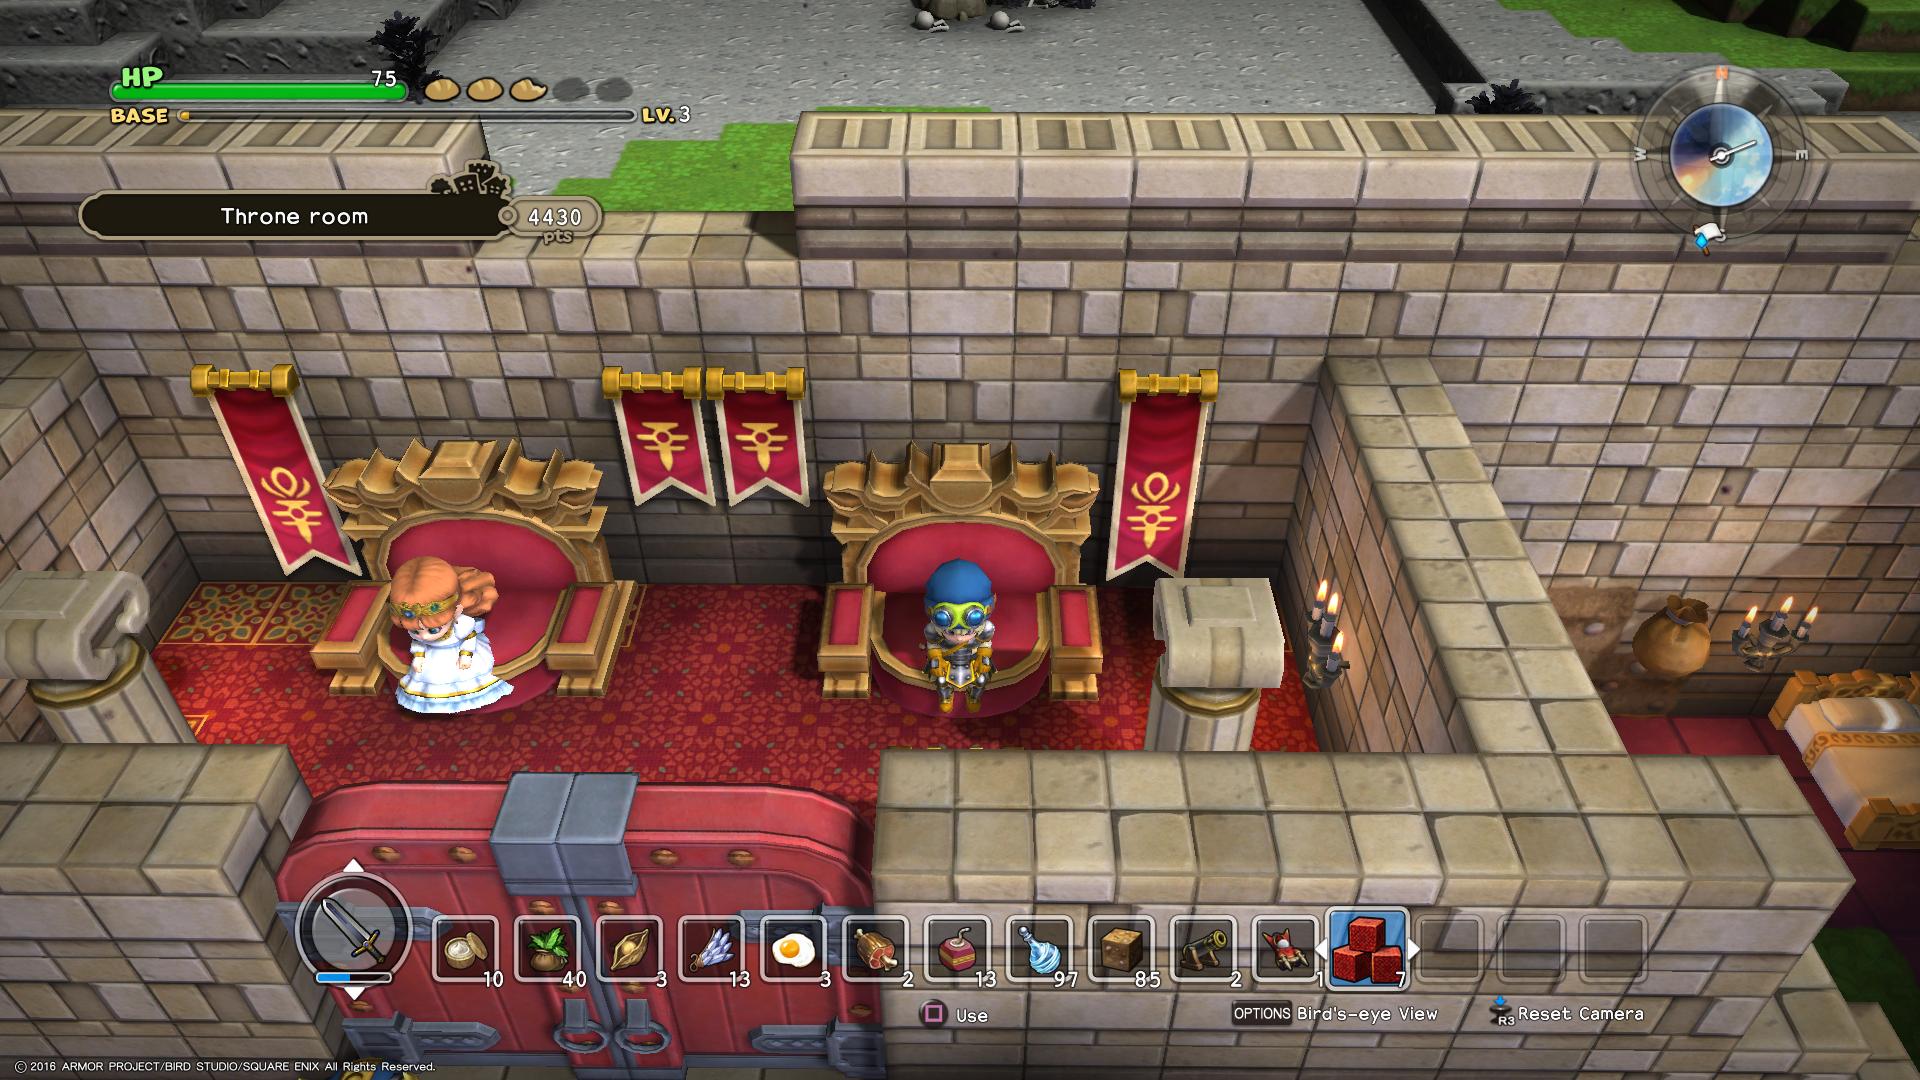 Dragon Quest Builders Review And Screenshots Ps4 Dragon quest builders 2 room recipes. dragon quest builders review and